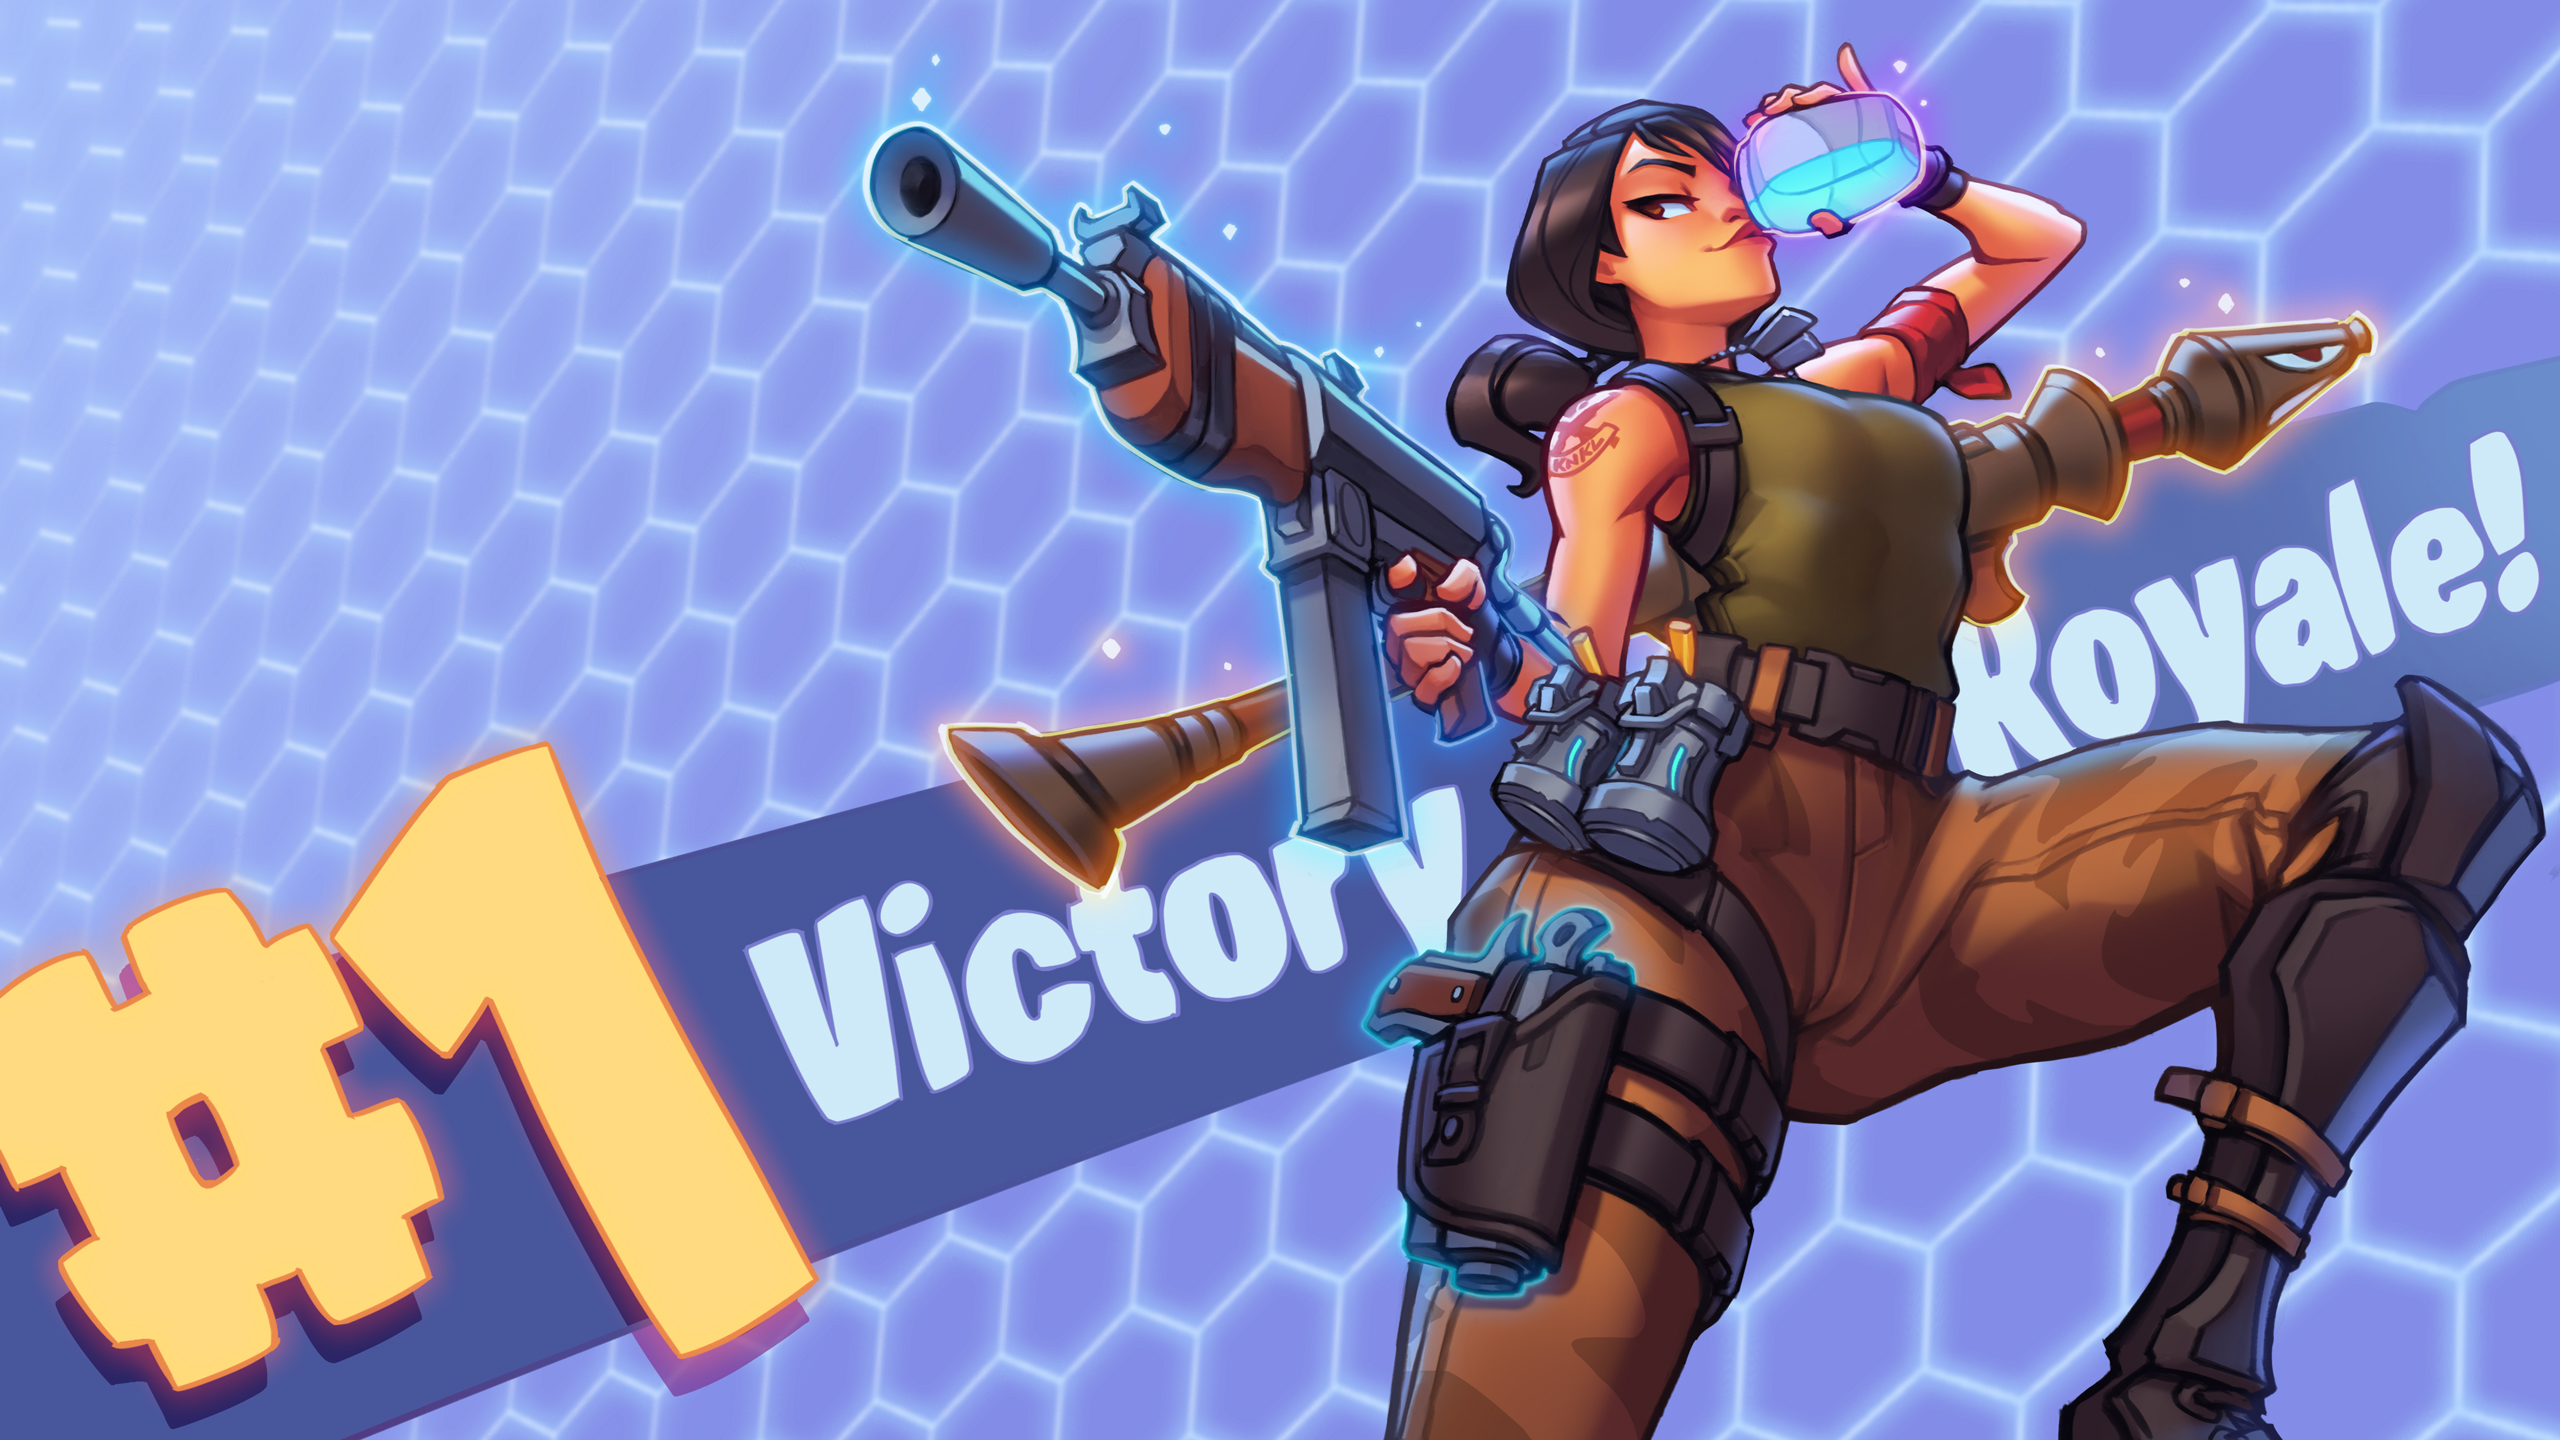 Fortnite Hd Games 4k Wallpapers Images Backgrounds: 2560x1440 Fortnite 2018 Victory Royale 1440P Resolution HD